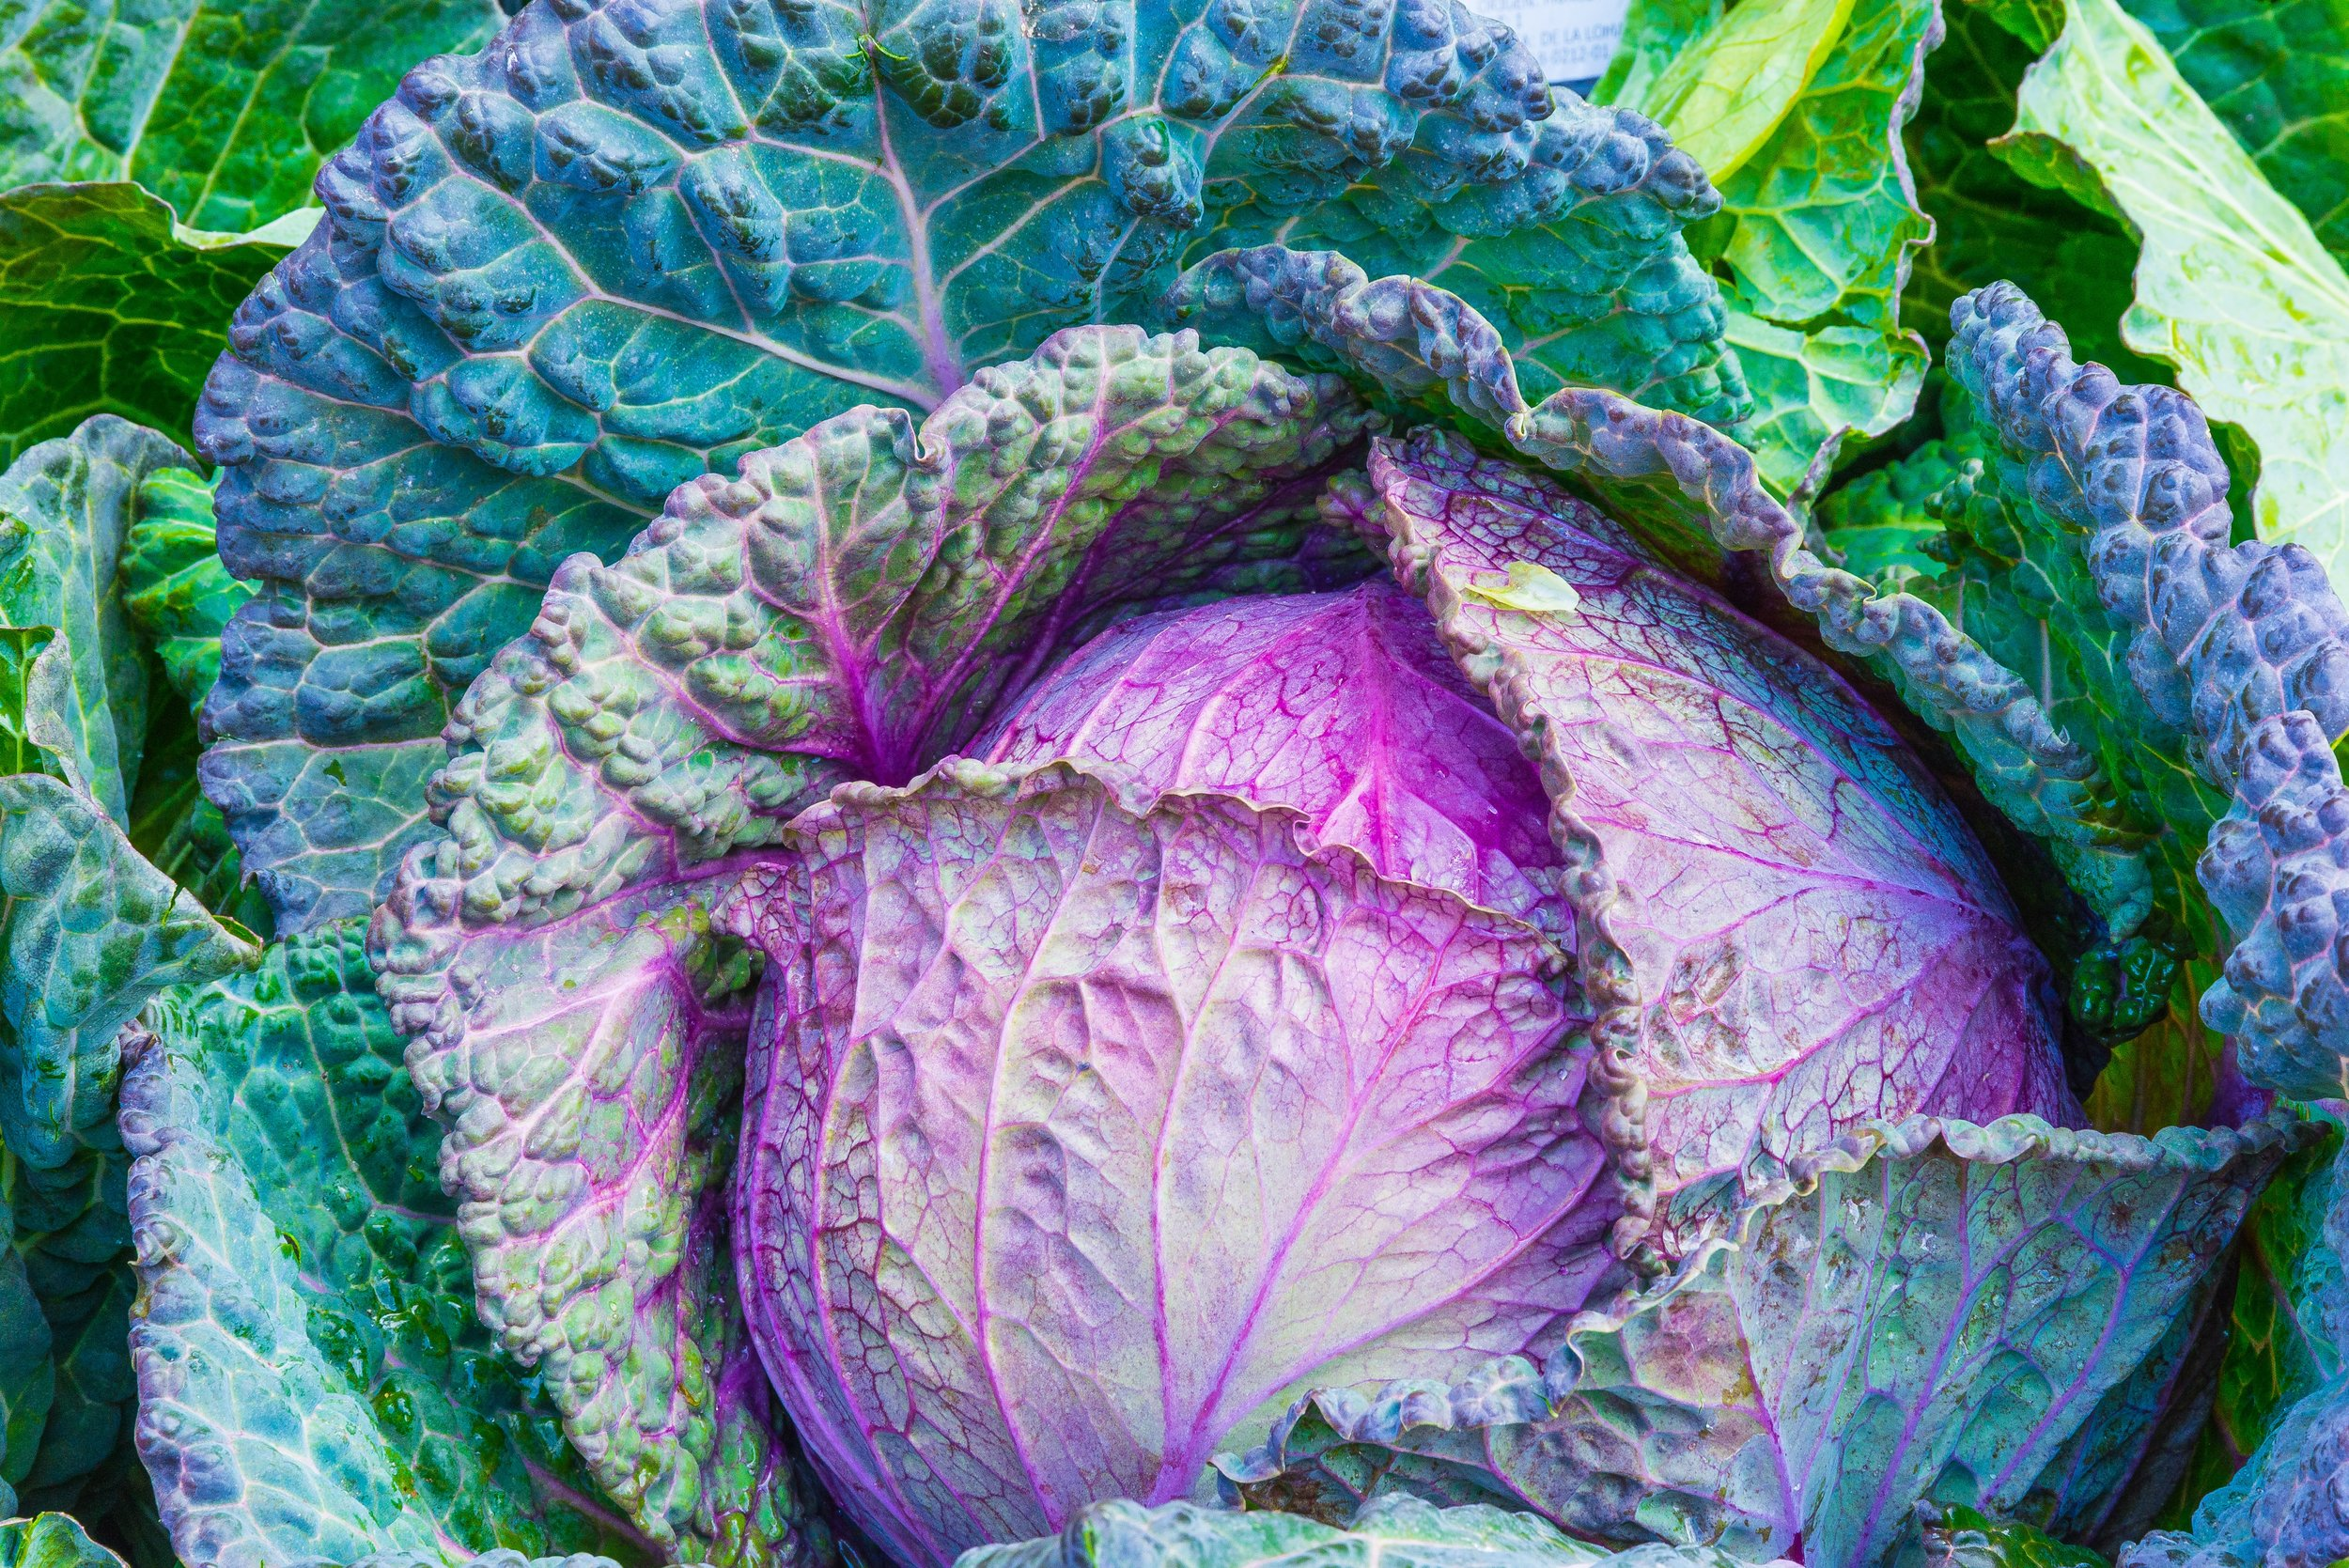 Eating too much cabbage